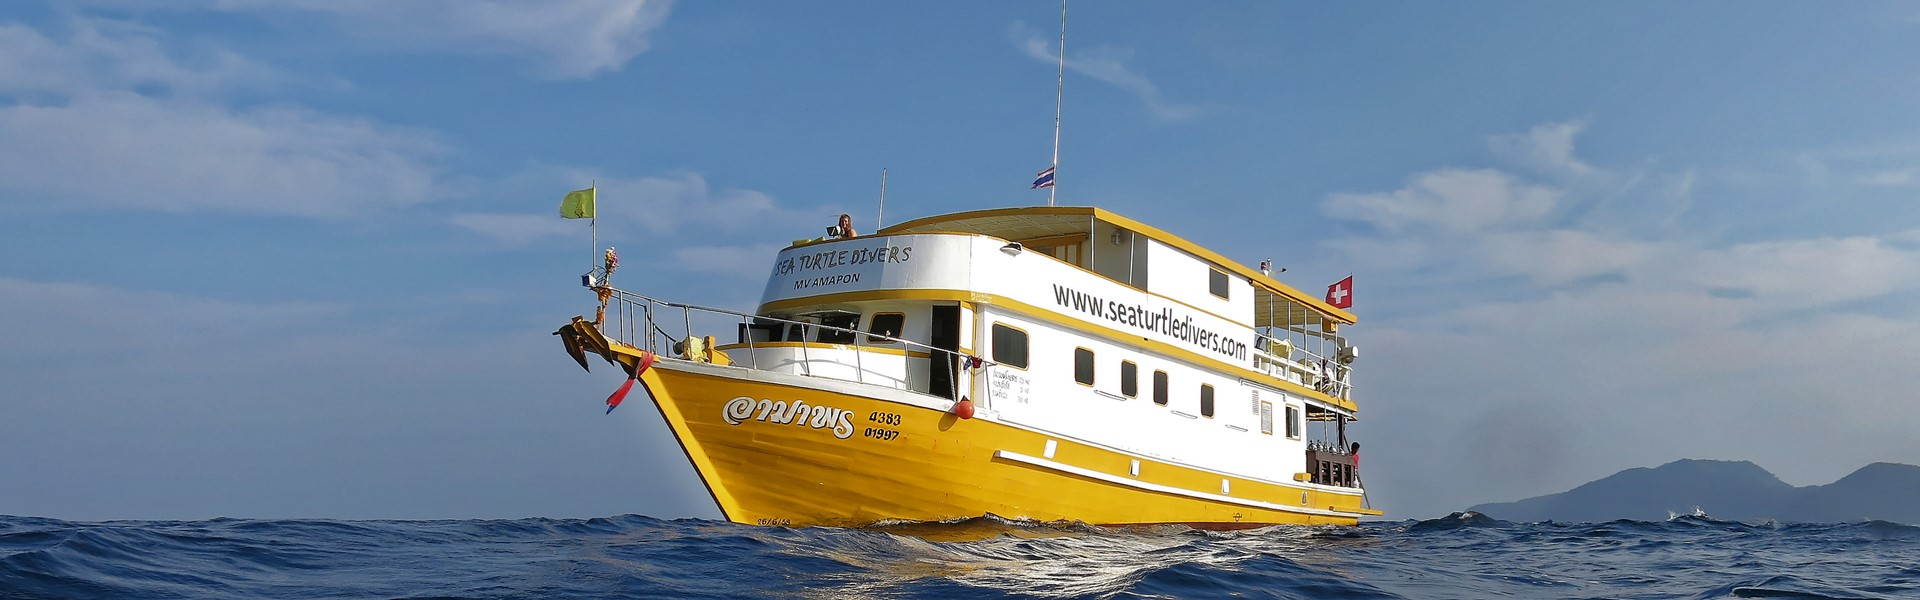 MV Amapon der Sea Turtle Divers Khao Lak